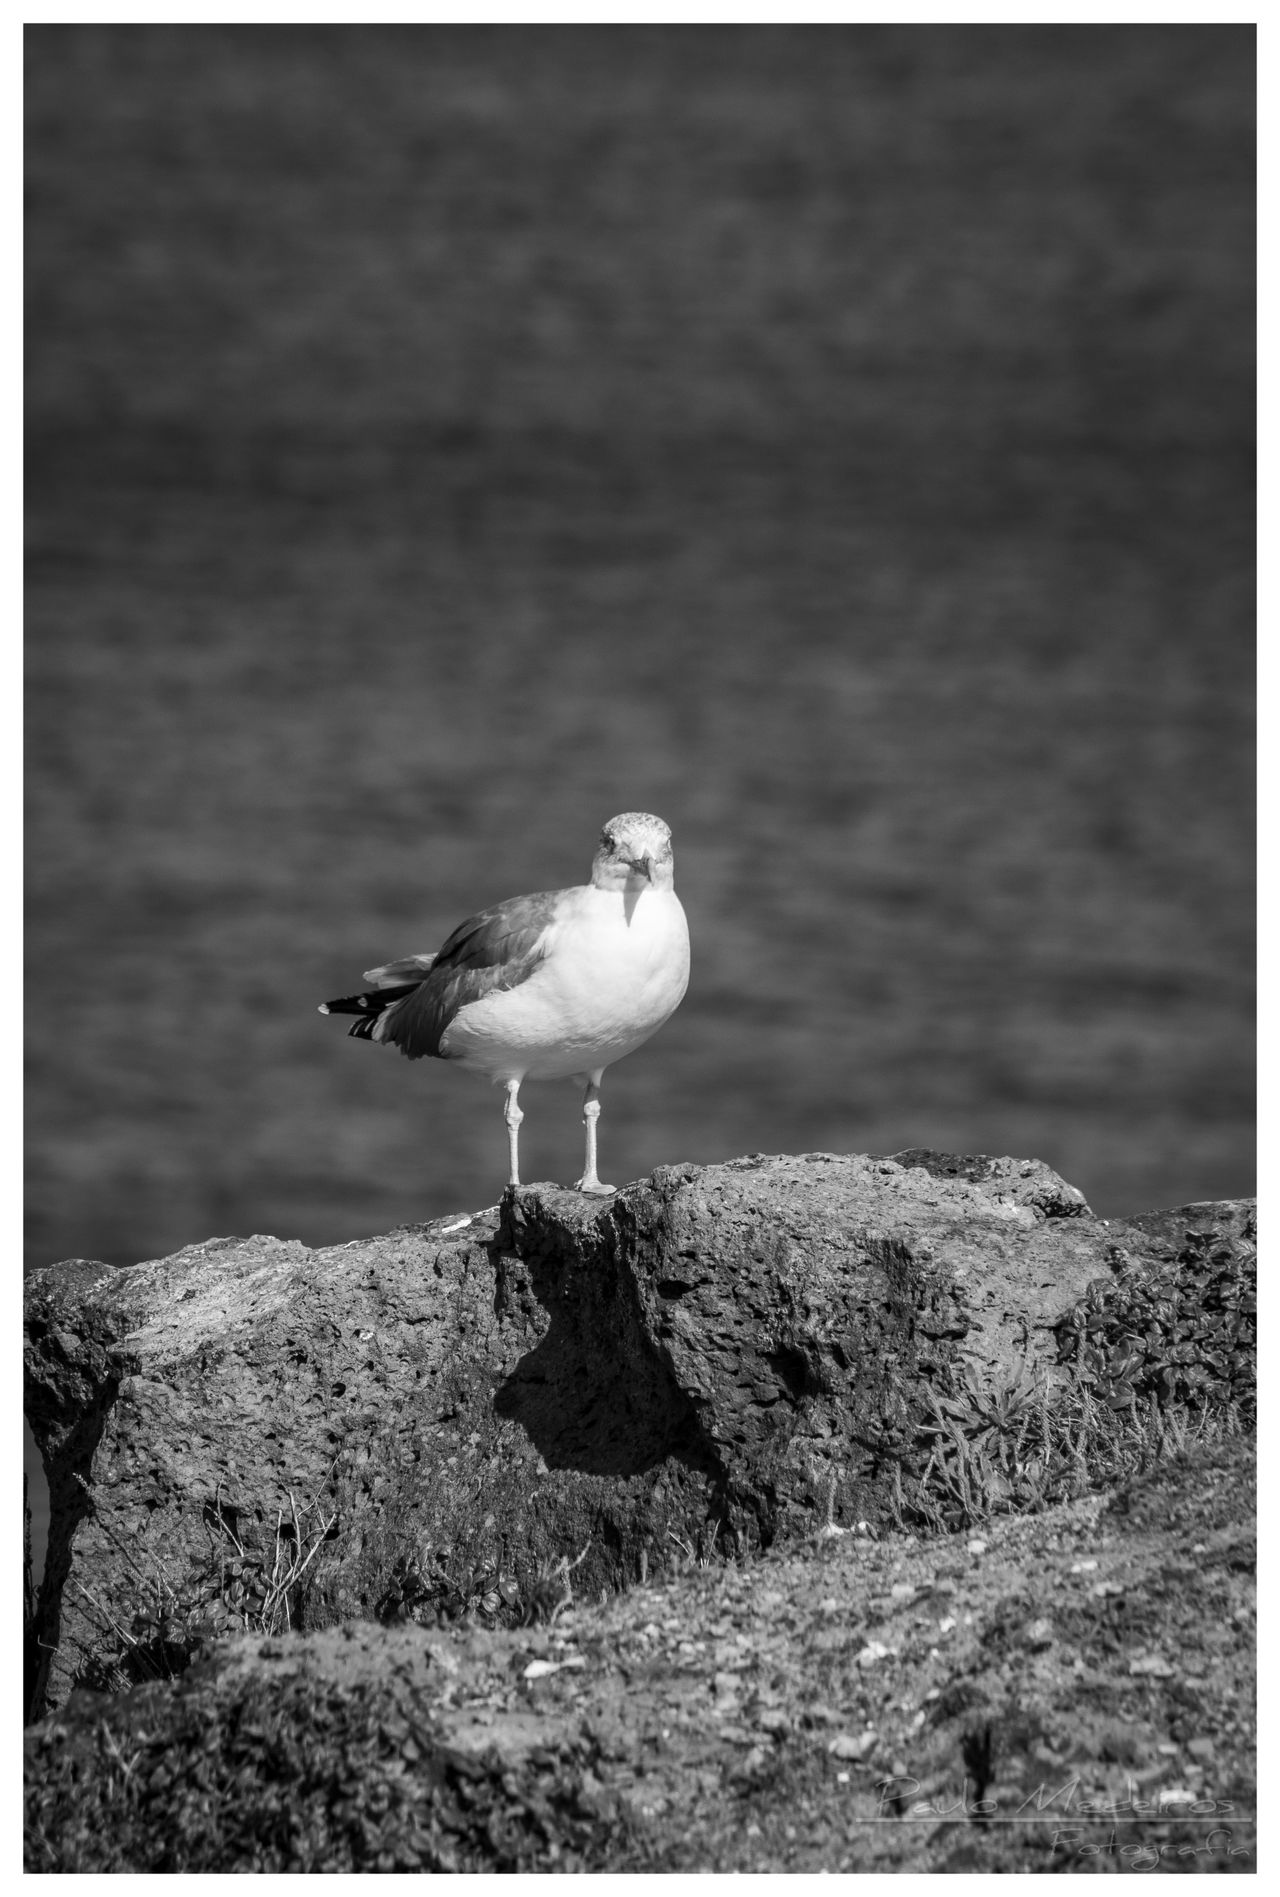 Canon 550 D Relaxing Seagull Black And White Bw Photography 70-300 TAMROM Rabo De Peixe Açores - Portugal São Miguel - Açores